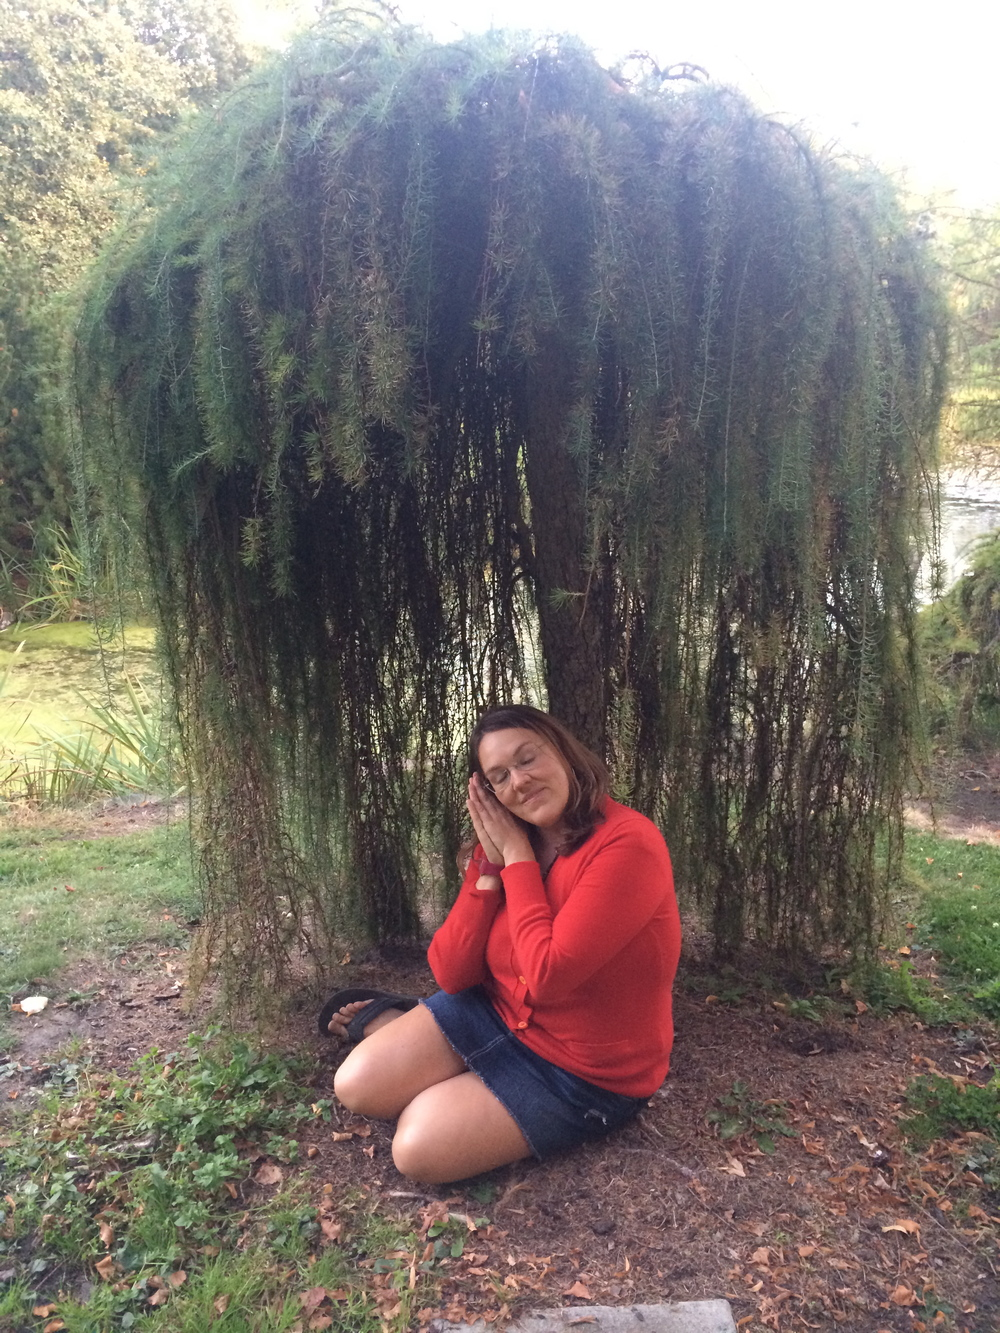 Jill is held in embrace of the trees branches. University of Idaho Arboretum. September 2014.